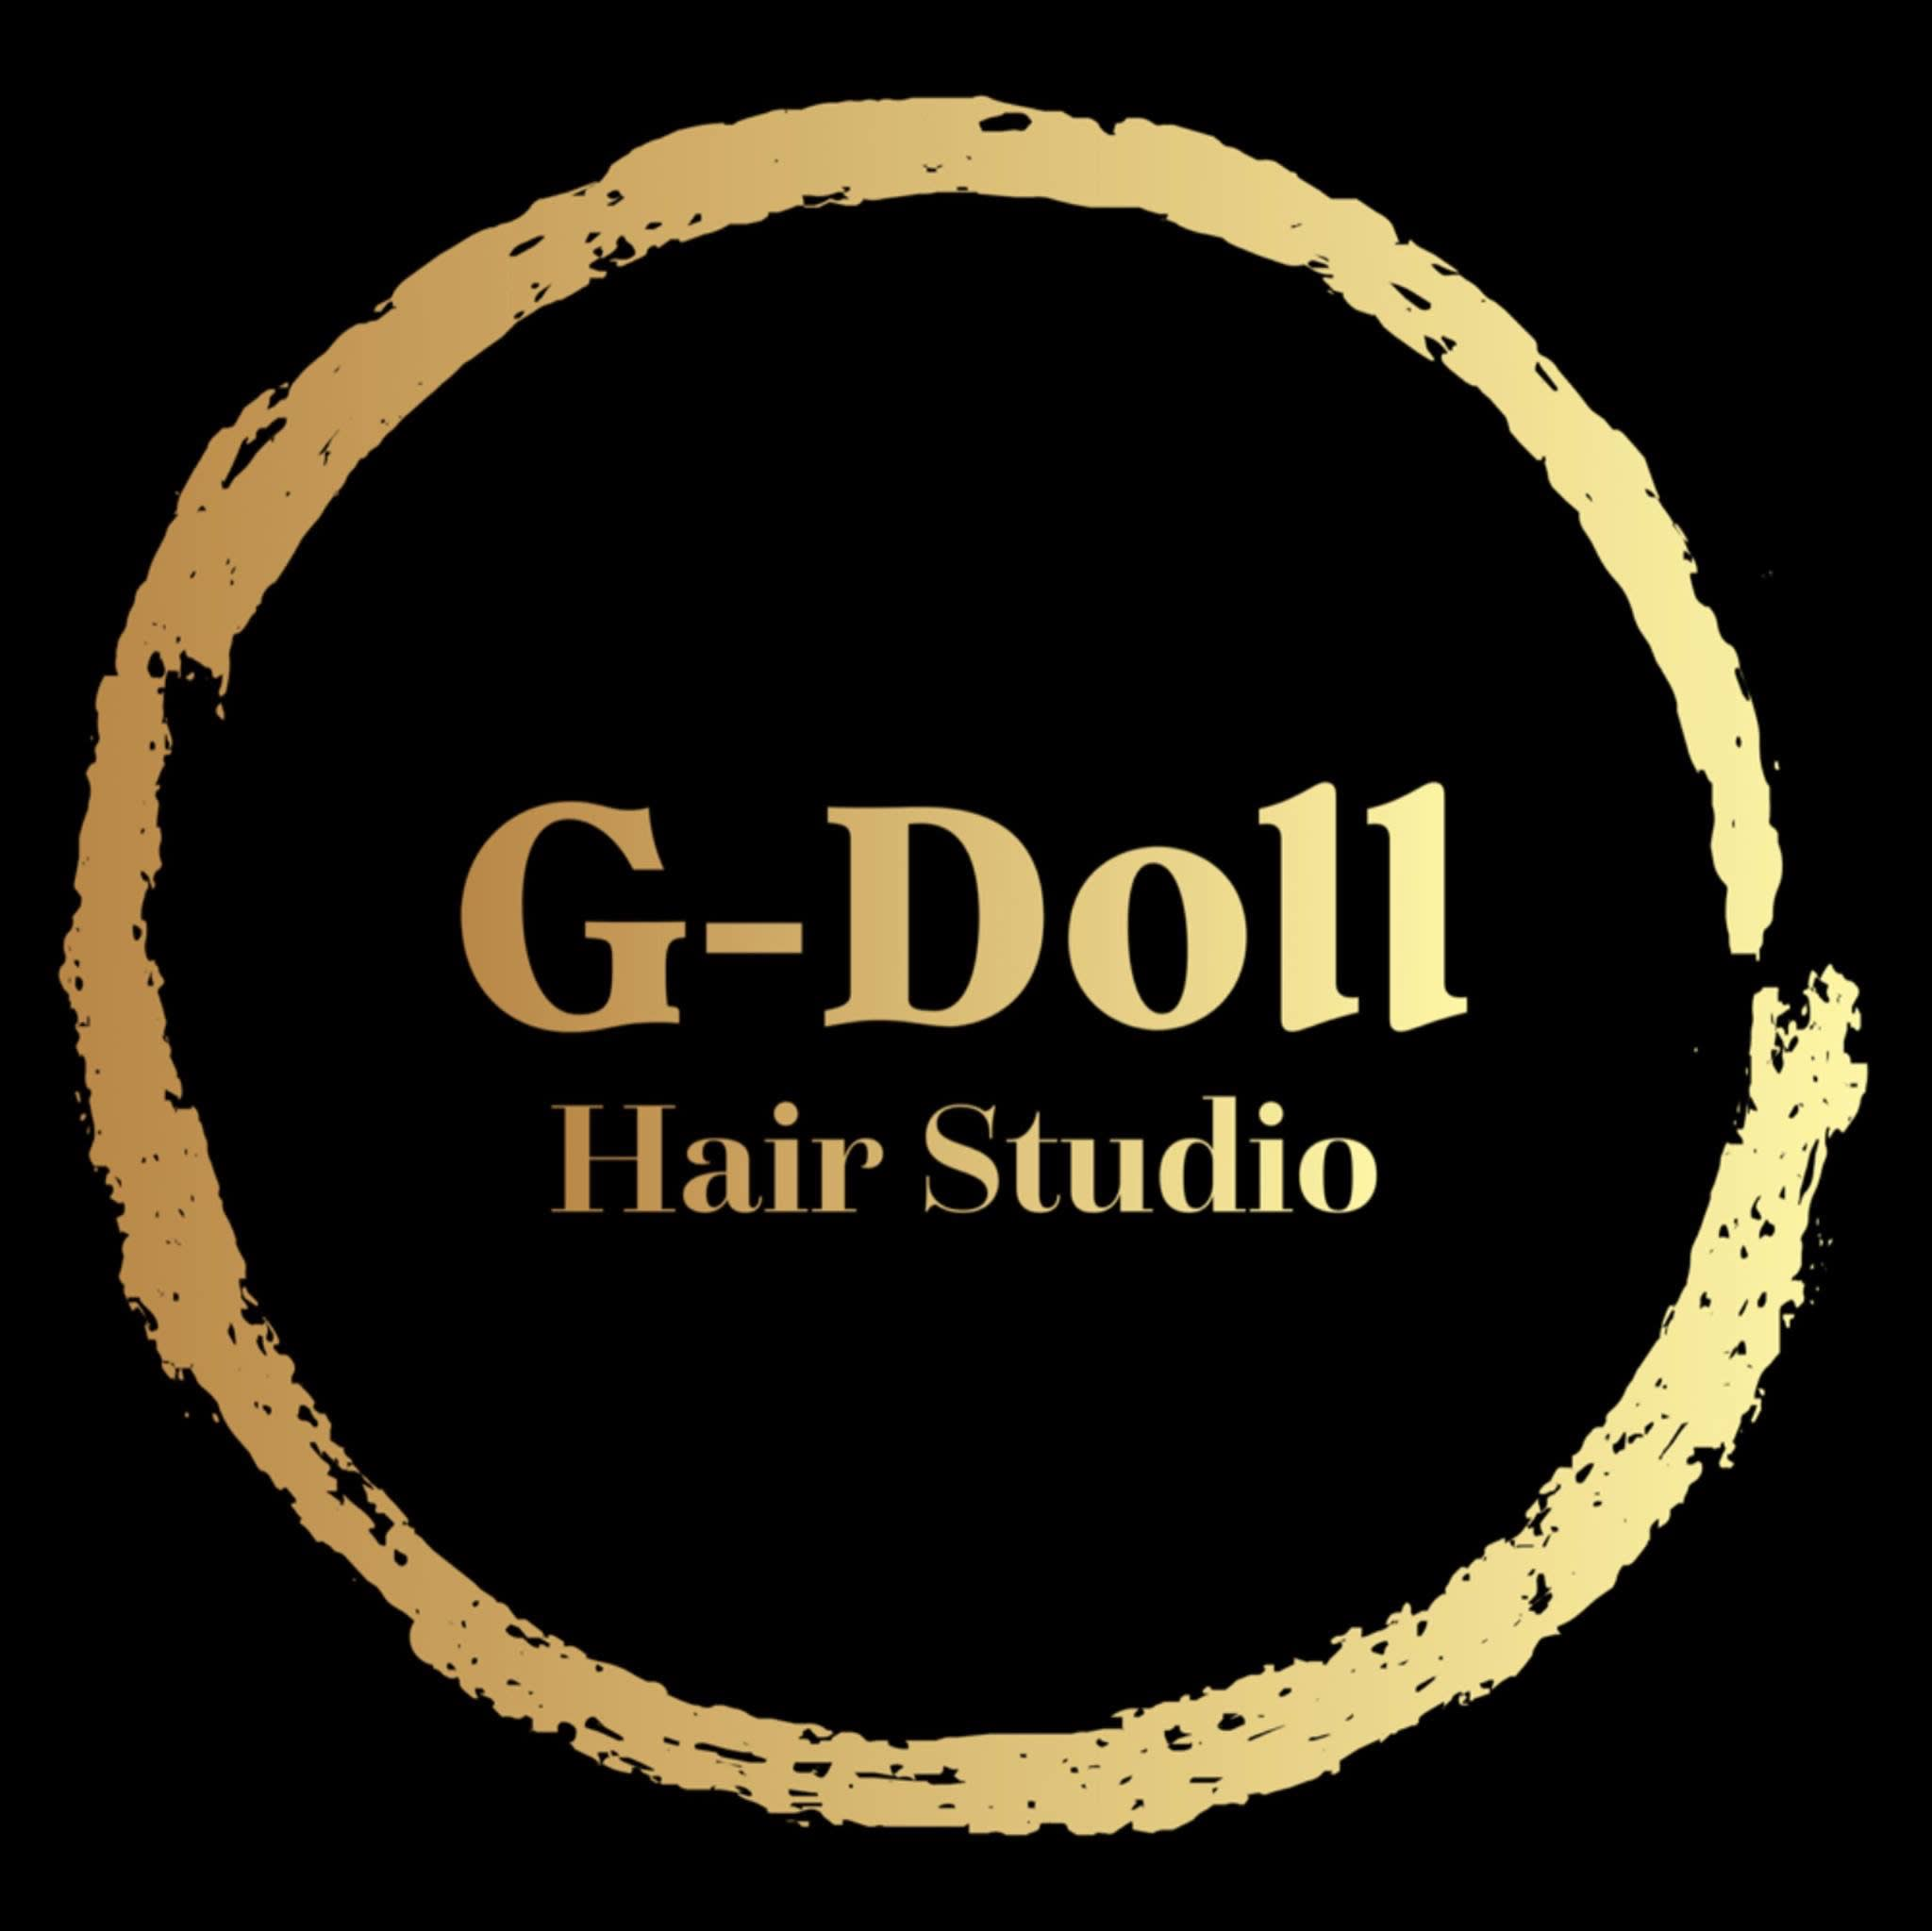 G-Doll Hair Studio